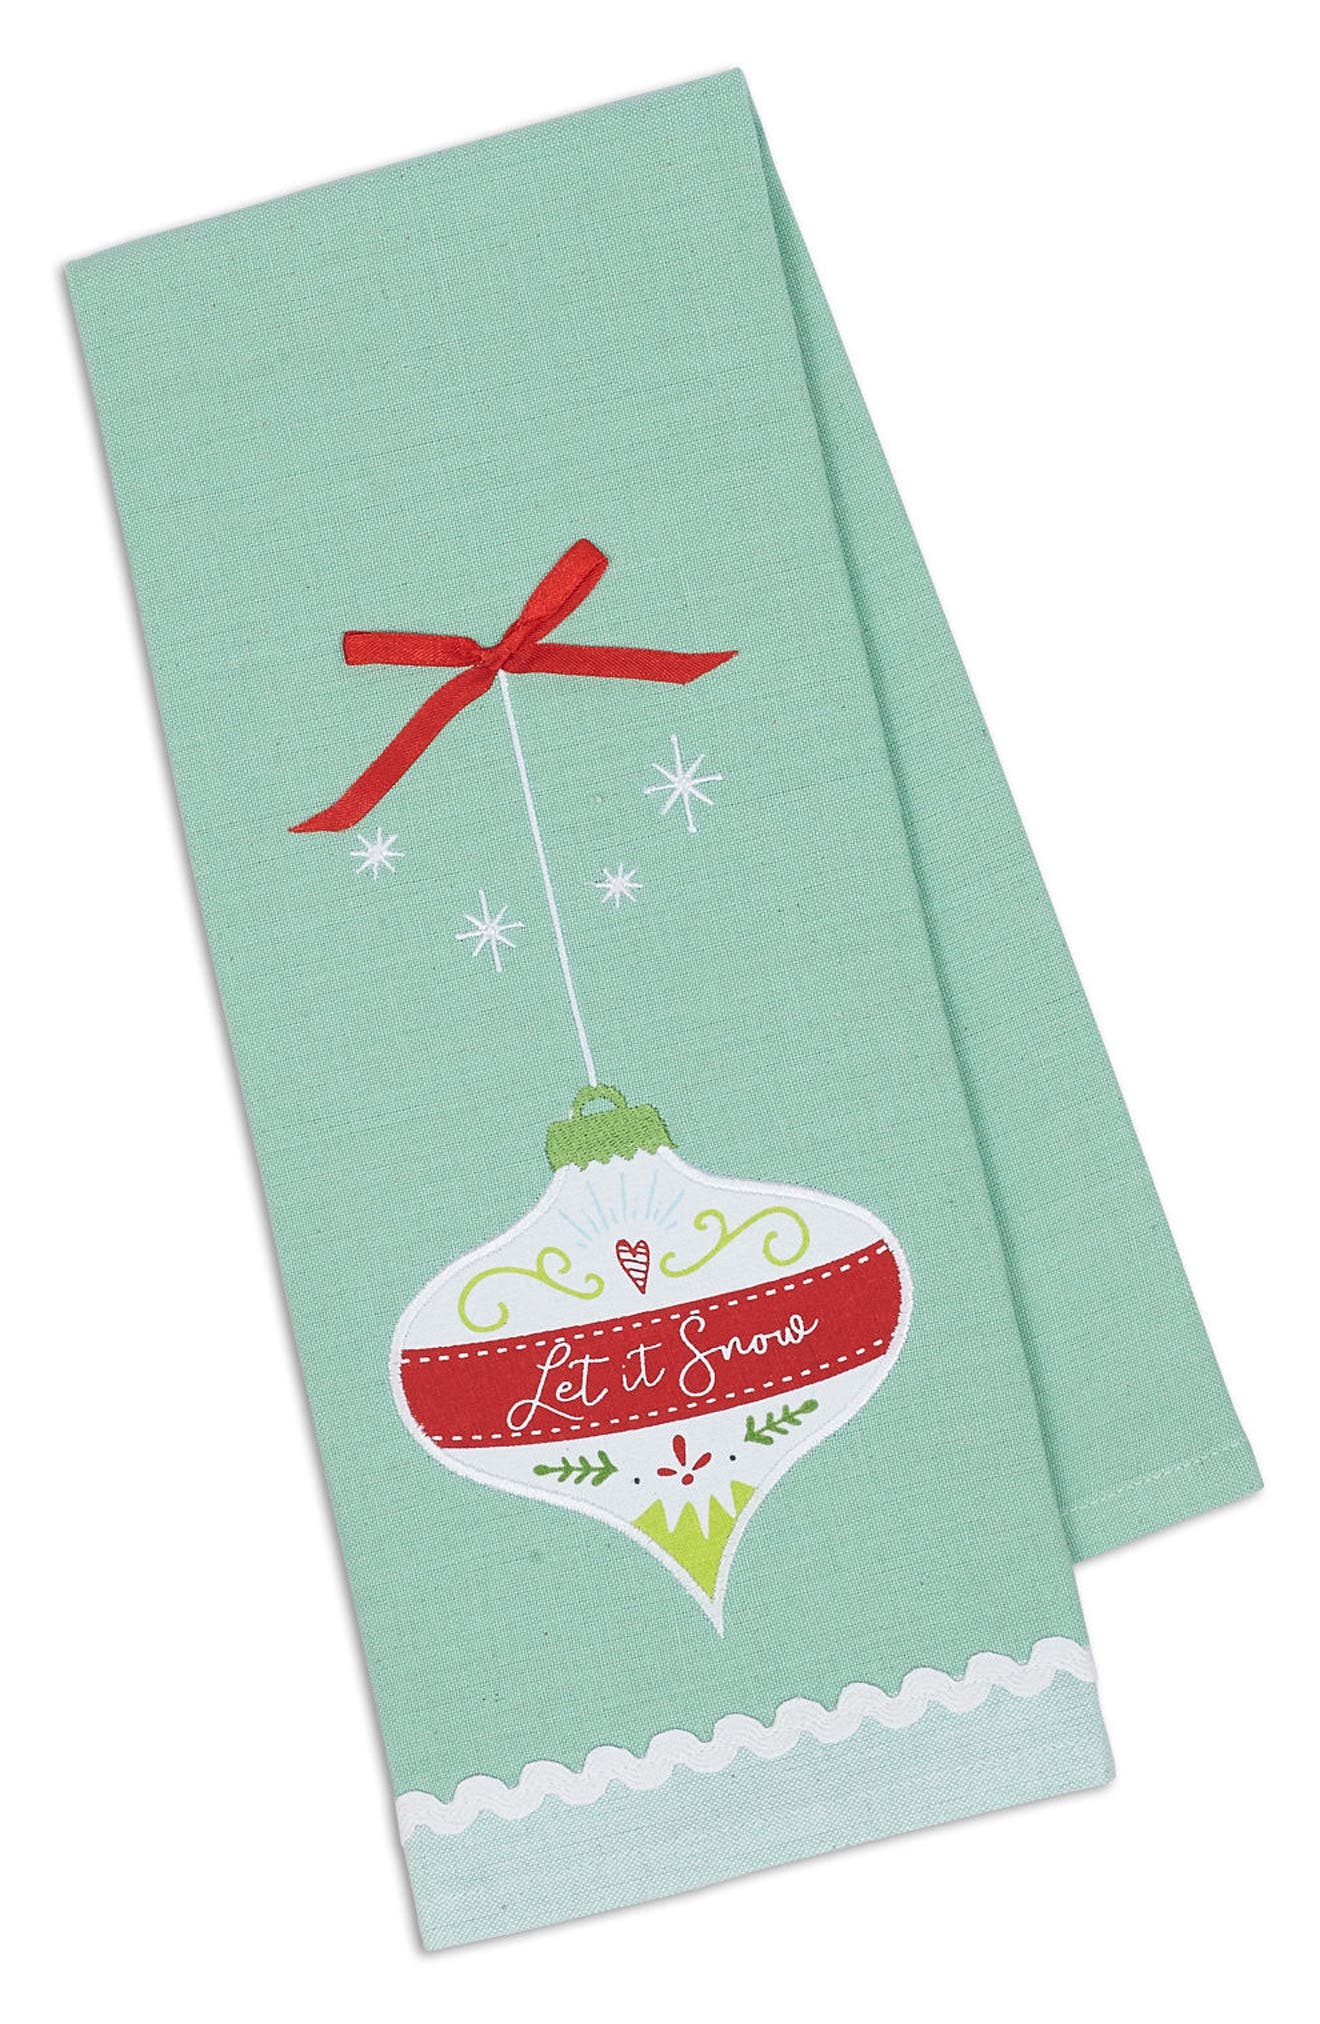 Let It Snow Embroidered Dish Towel,                         Main,                         color, Mint